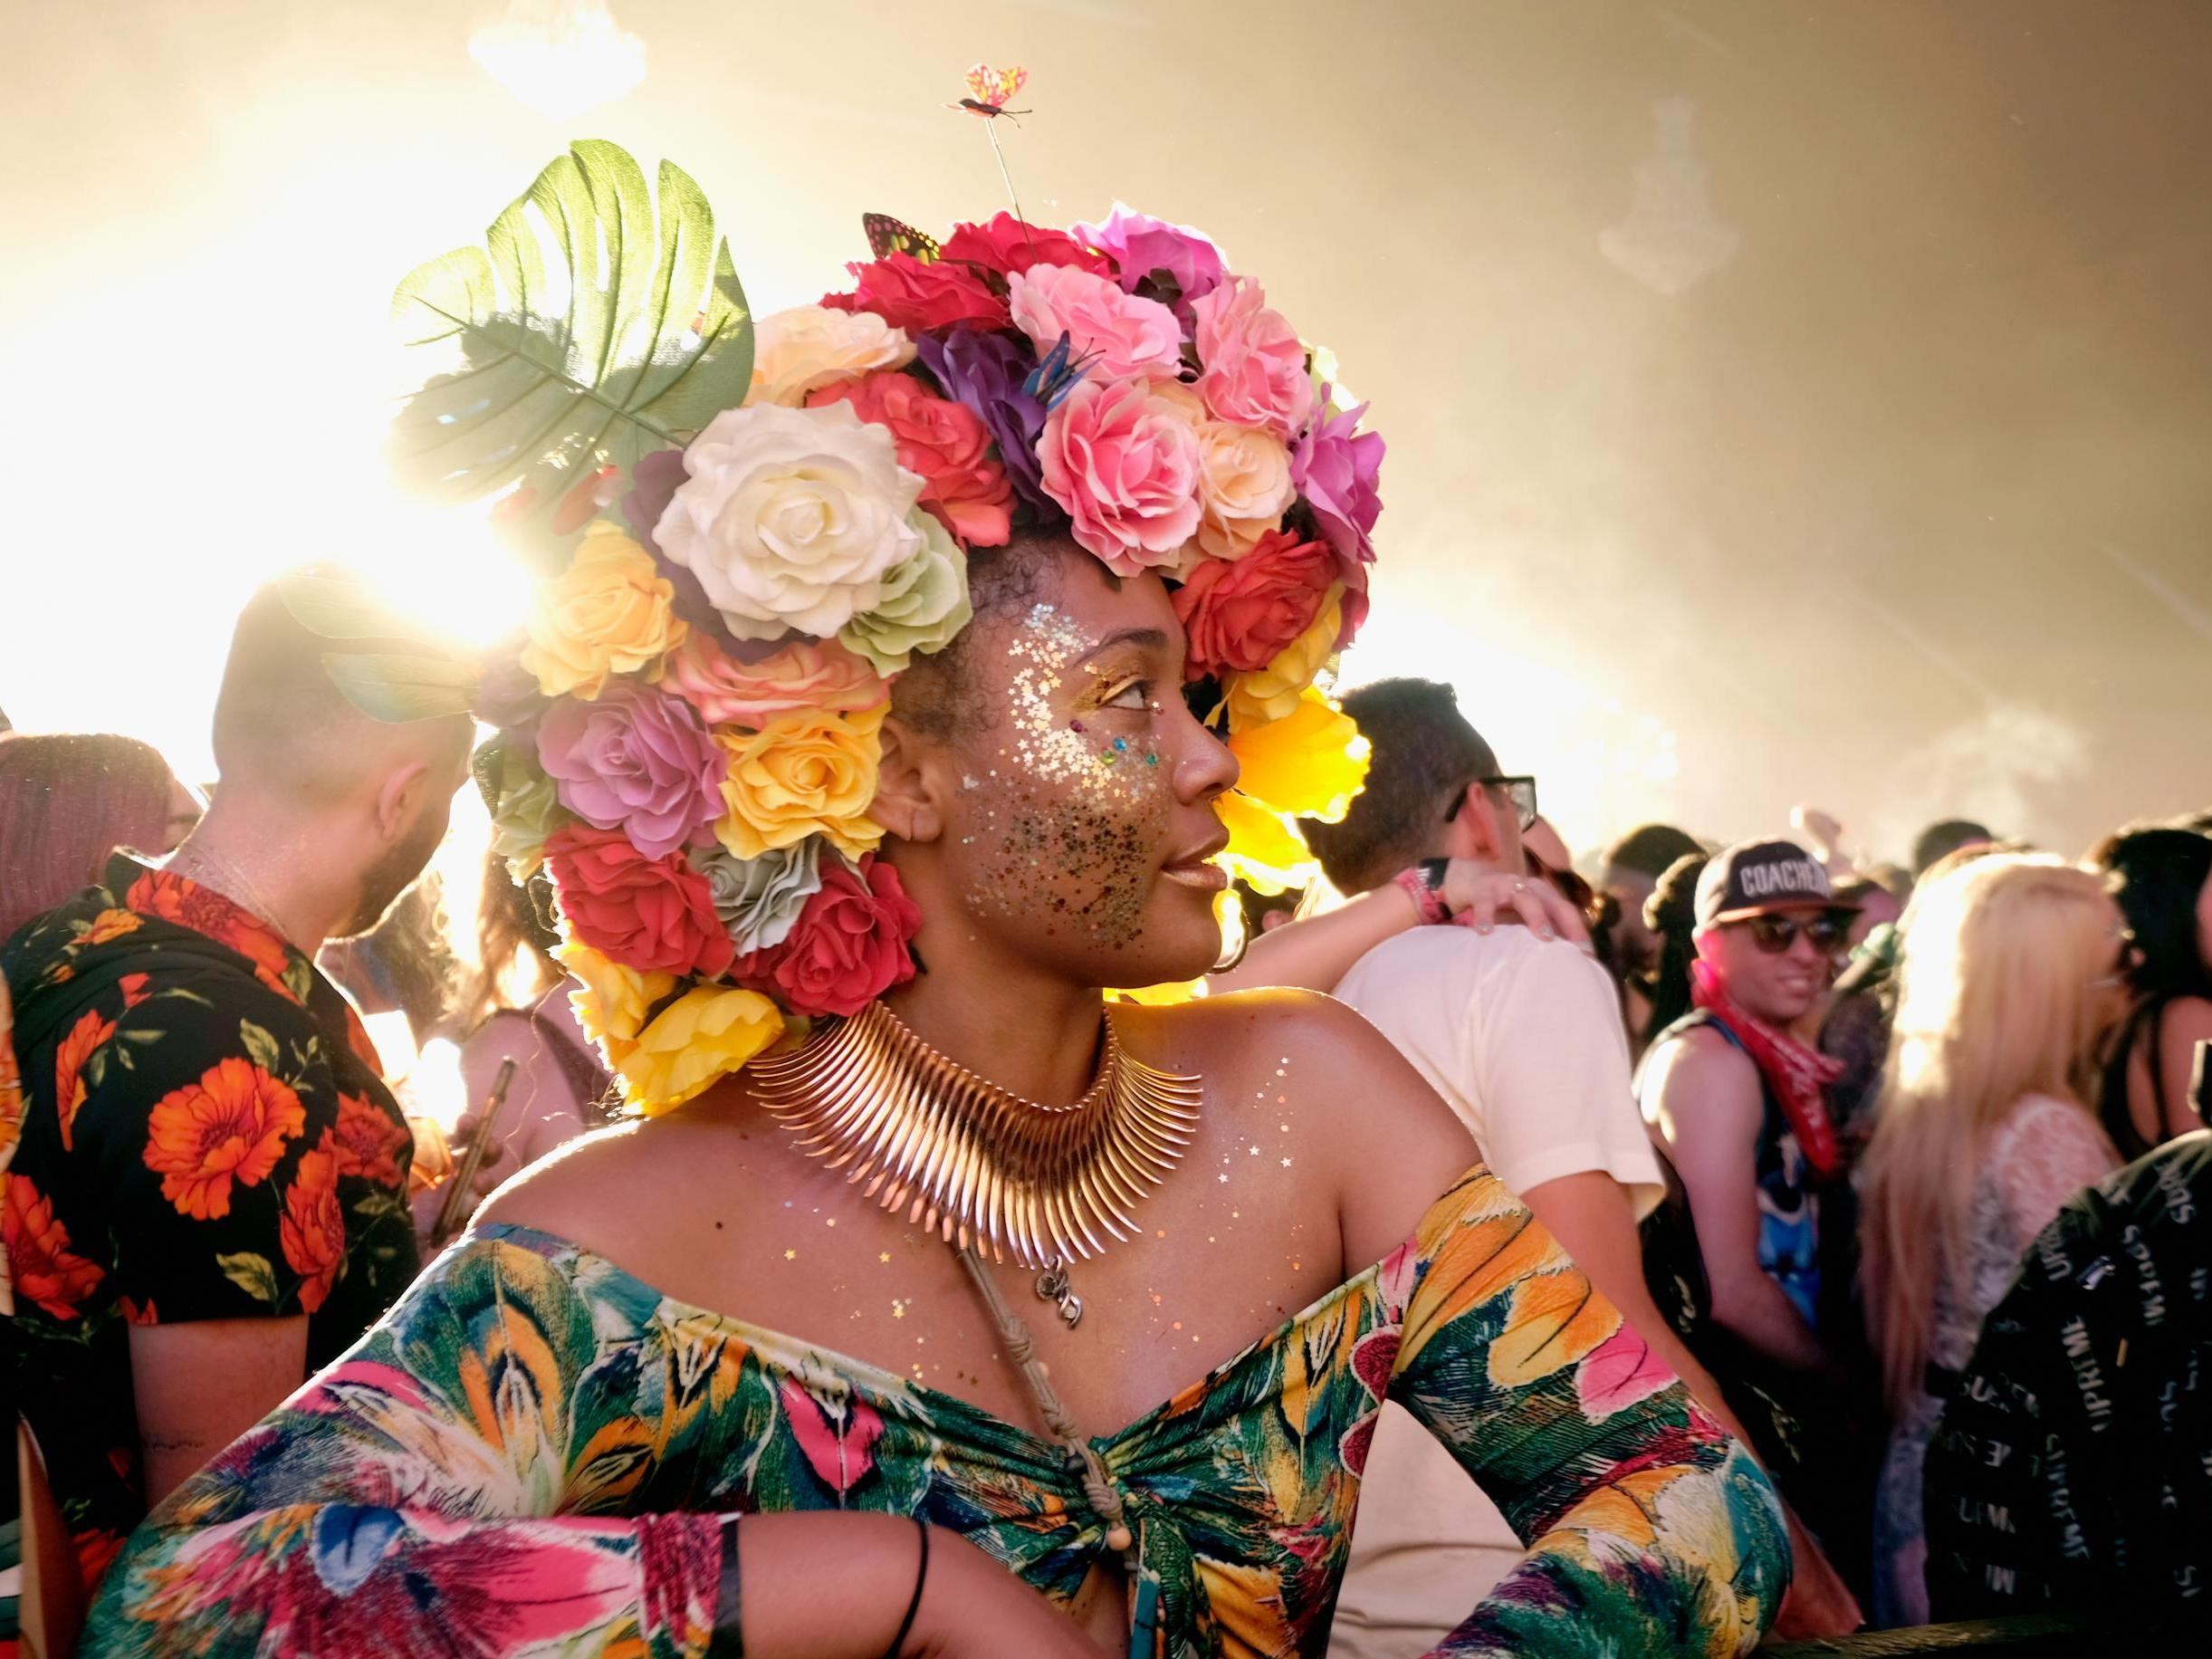 Coachella 2019: The best and boldest fashion from weekend two of the festival